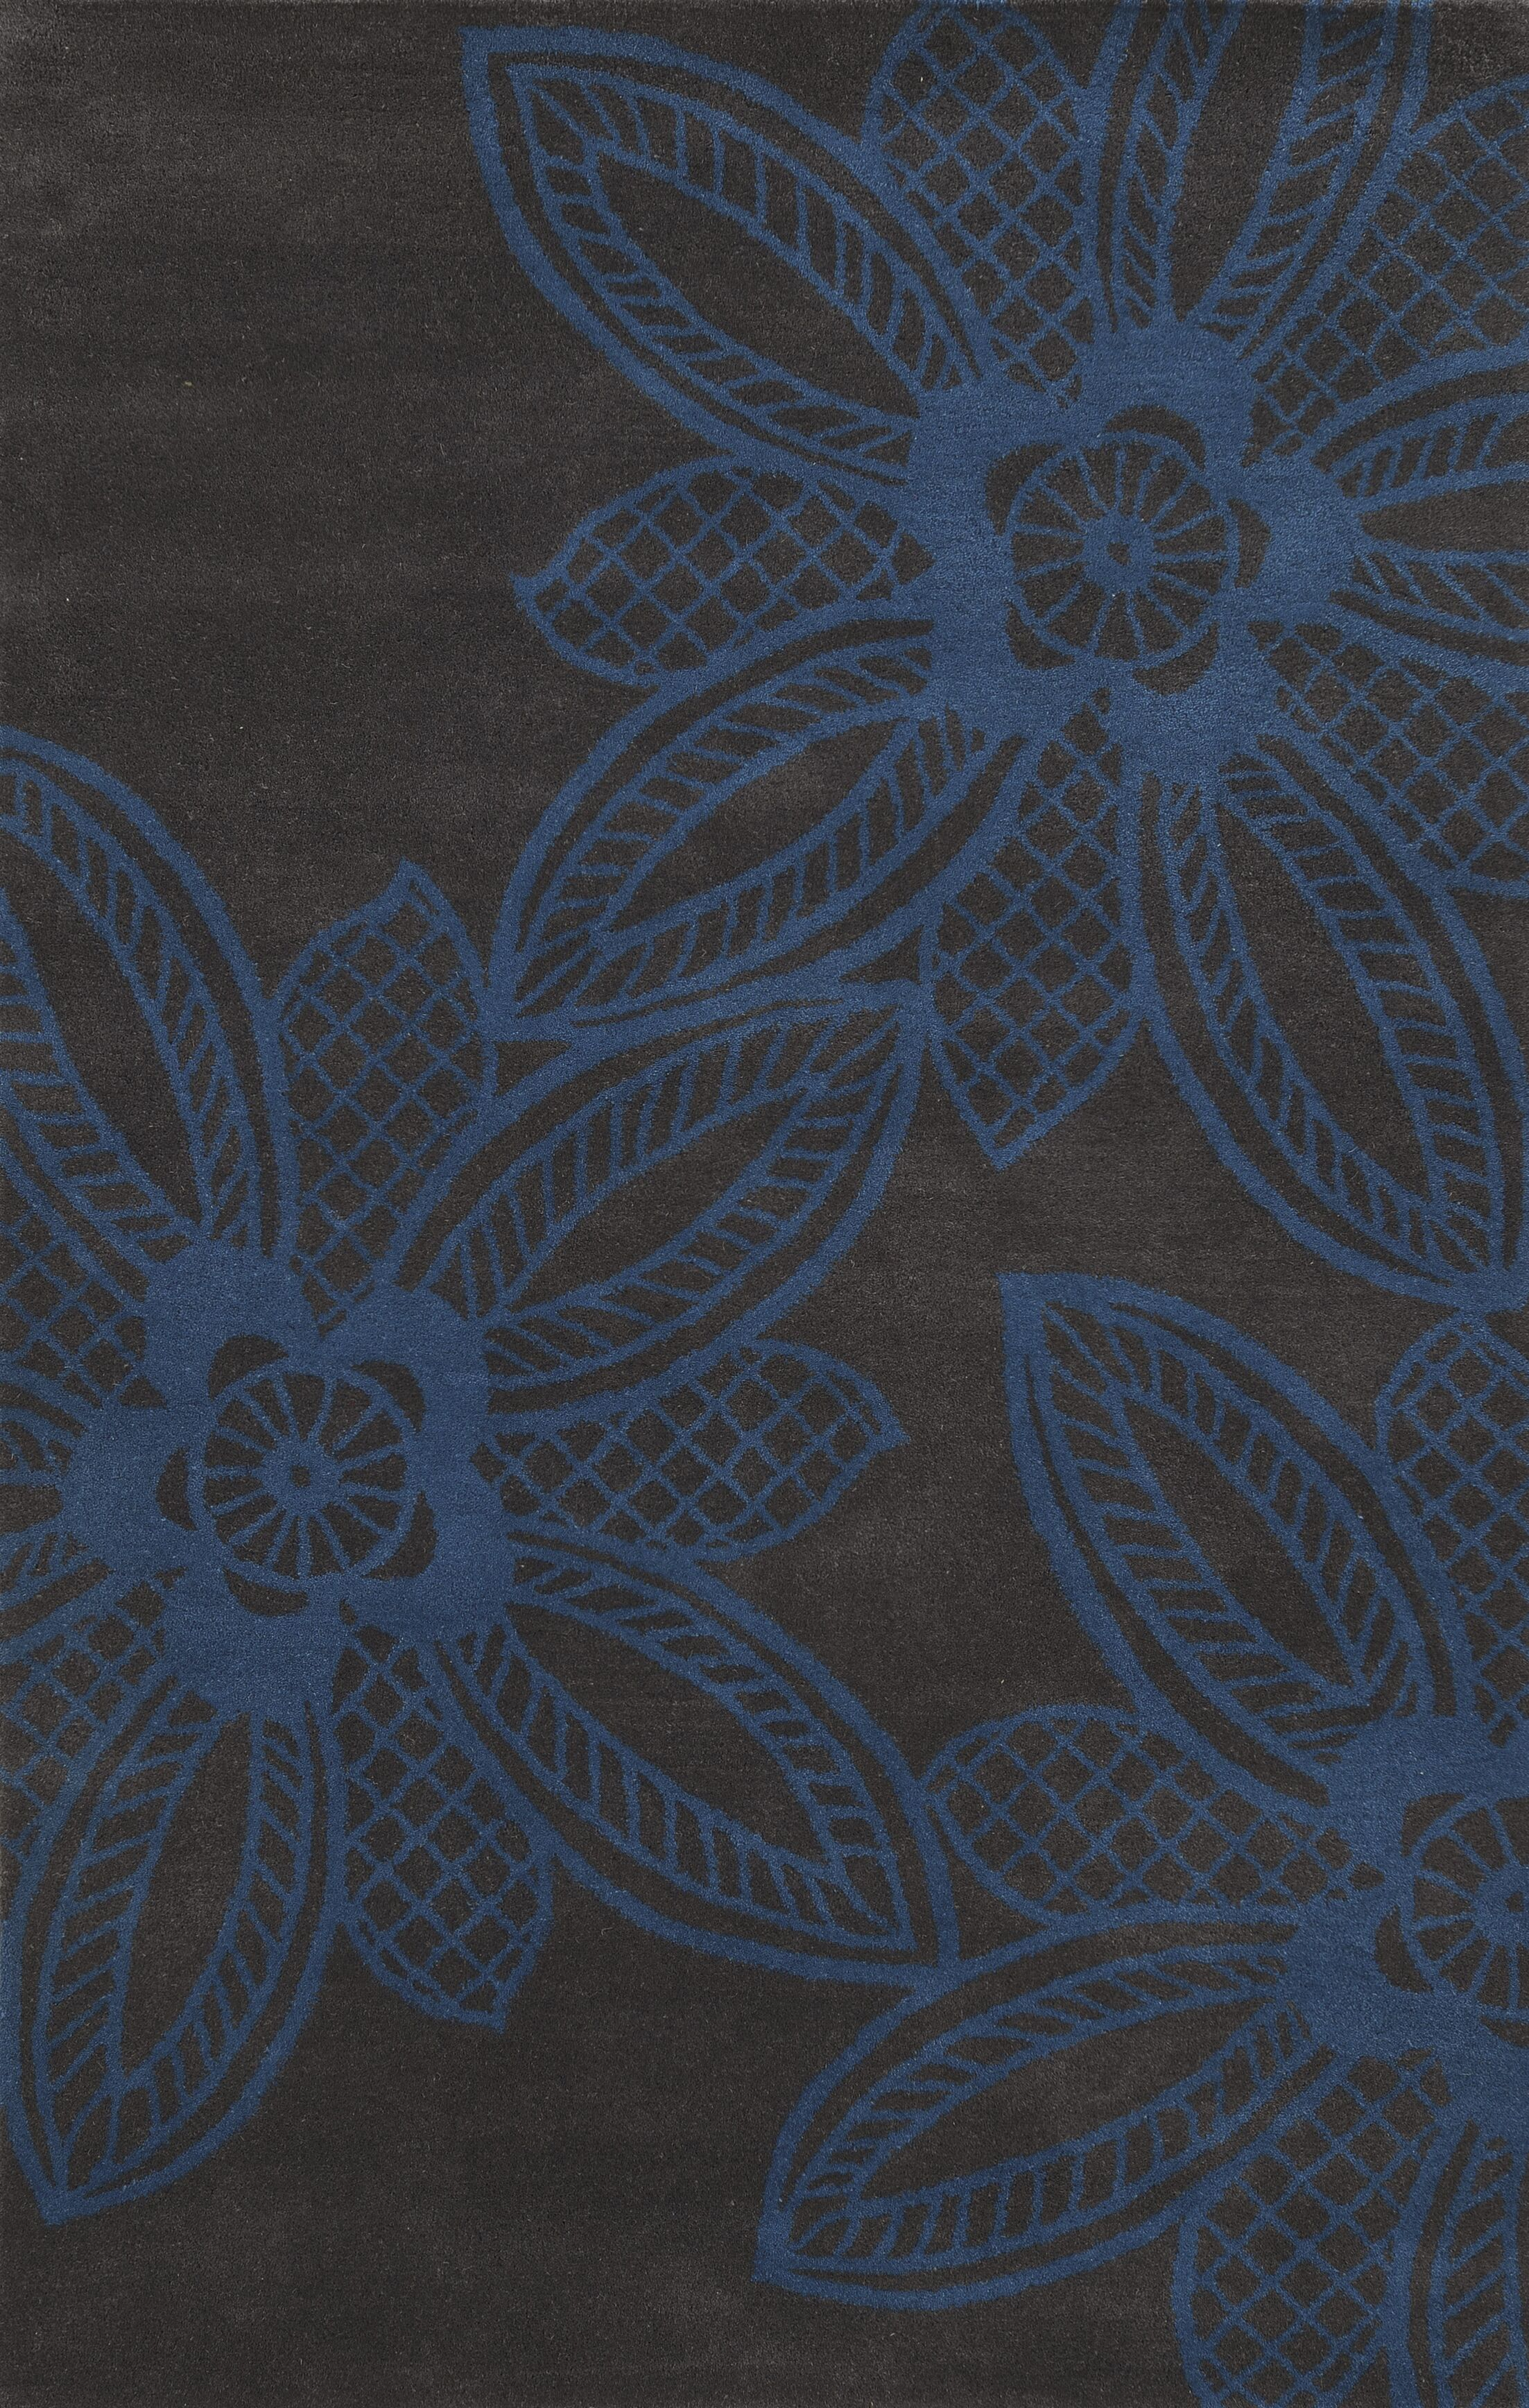 Sukhumi Hand-Tufted Blue/Grey Area Rug Rug Size: Rectangle 8' x 10'